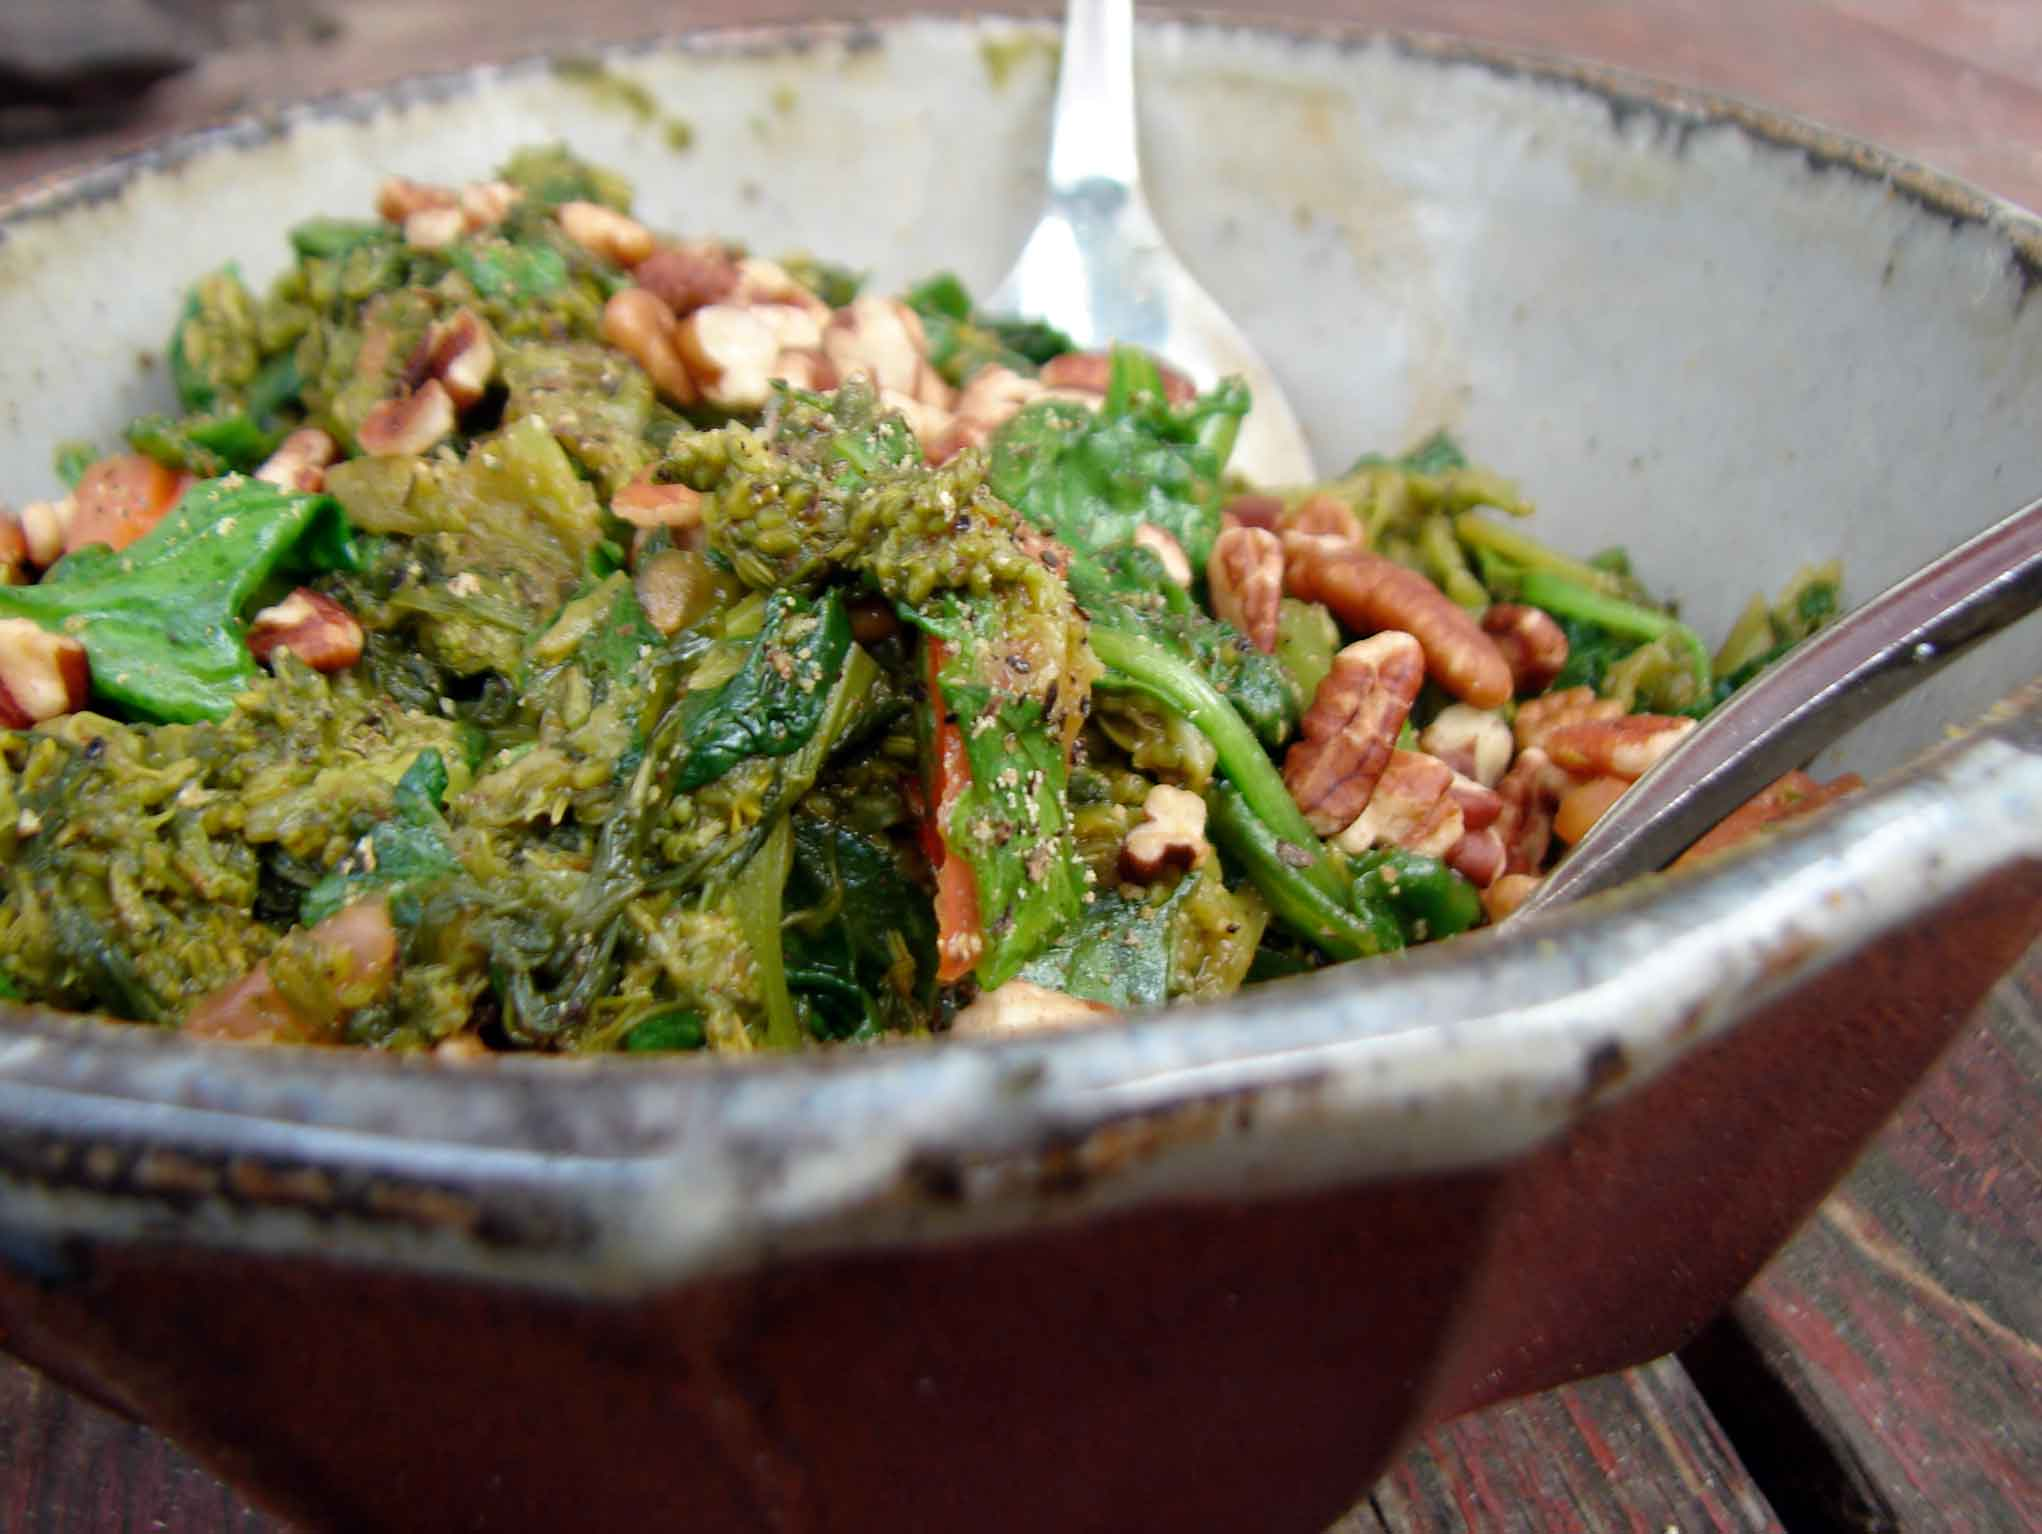 Broccoli rabe with brown sugar, spices and pecans | Out of the ...